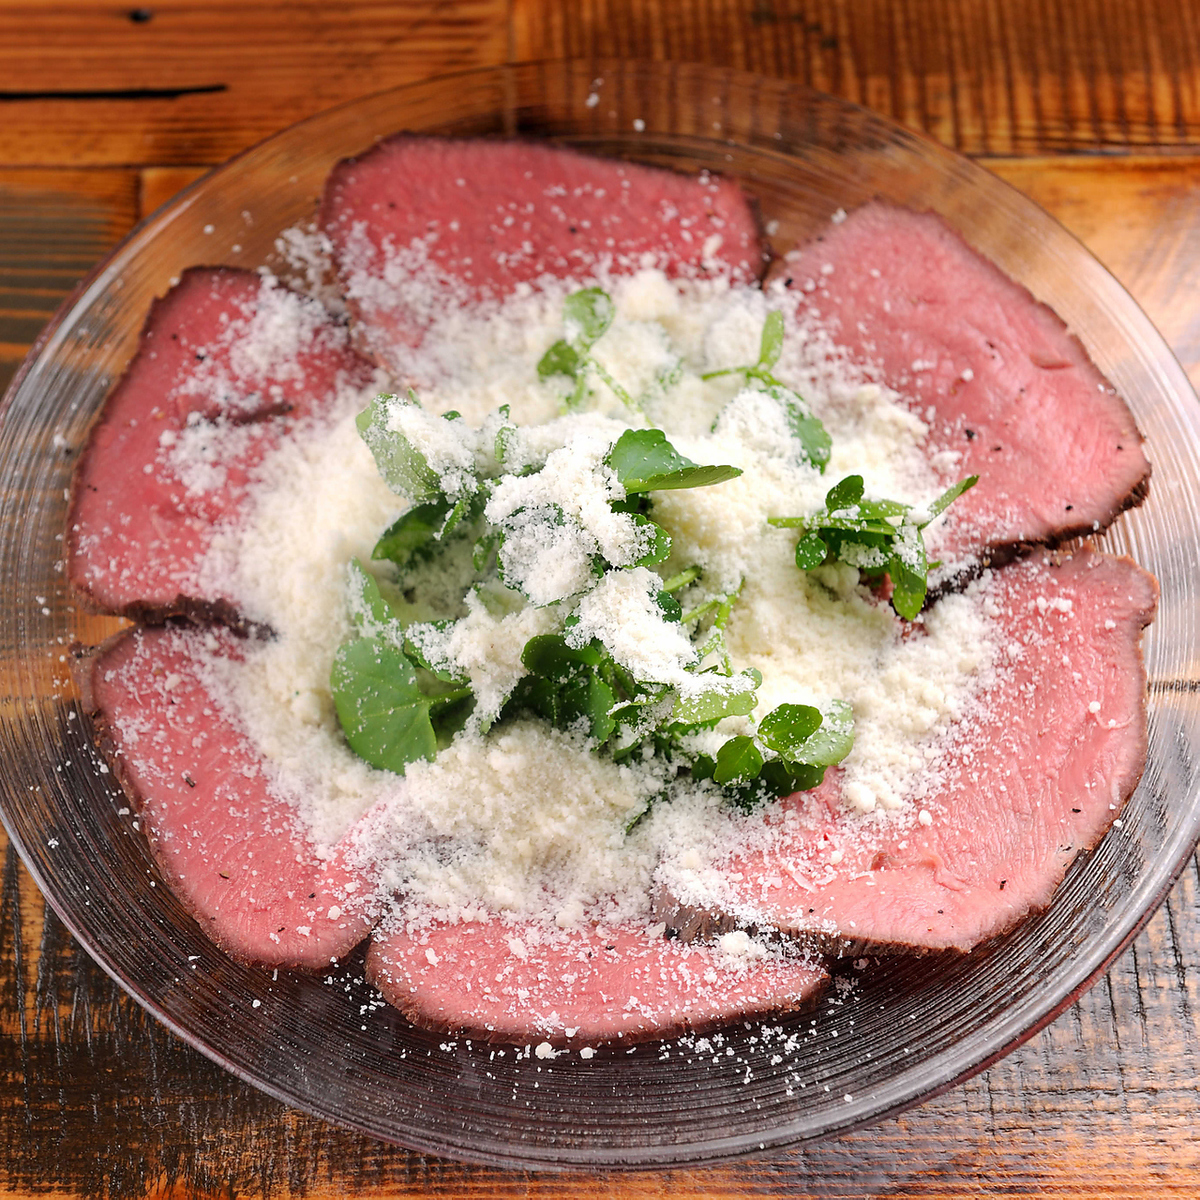 Beef tongue roast carpaccio (salt-tan style secret biscuit fish / plenty of Parmigiano)